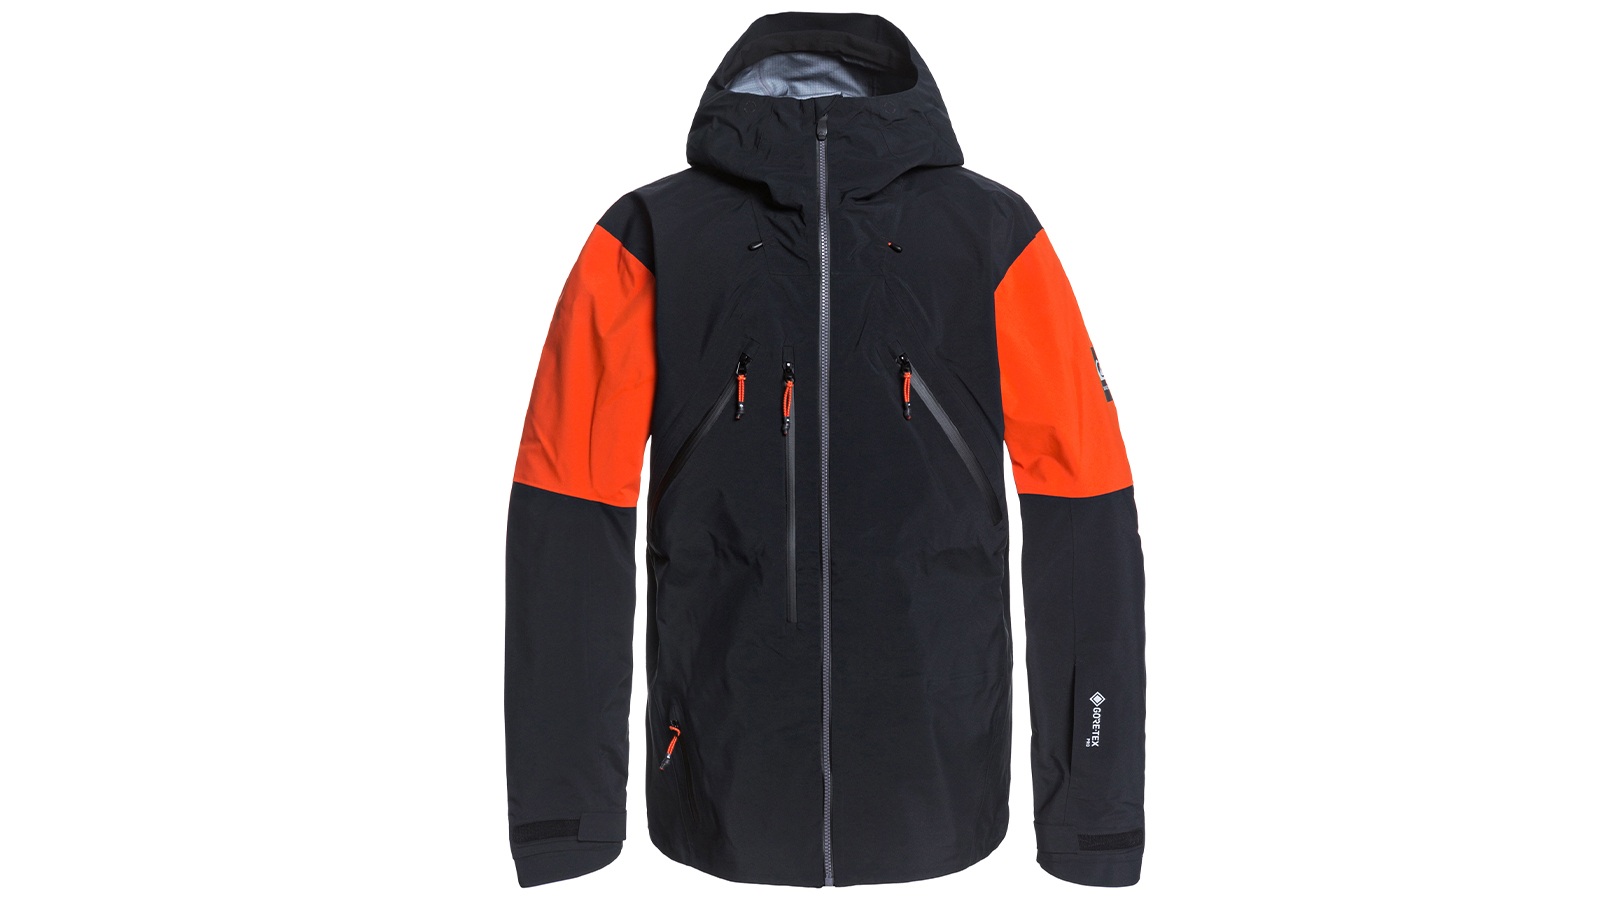 Quiksilver FW20/21 Men's Outerwear Preview